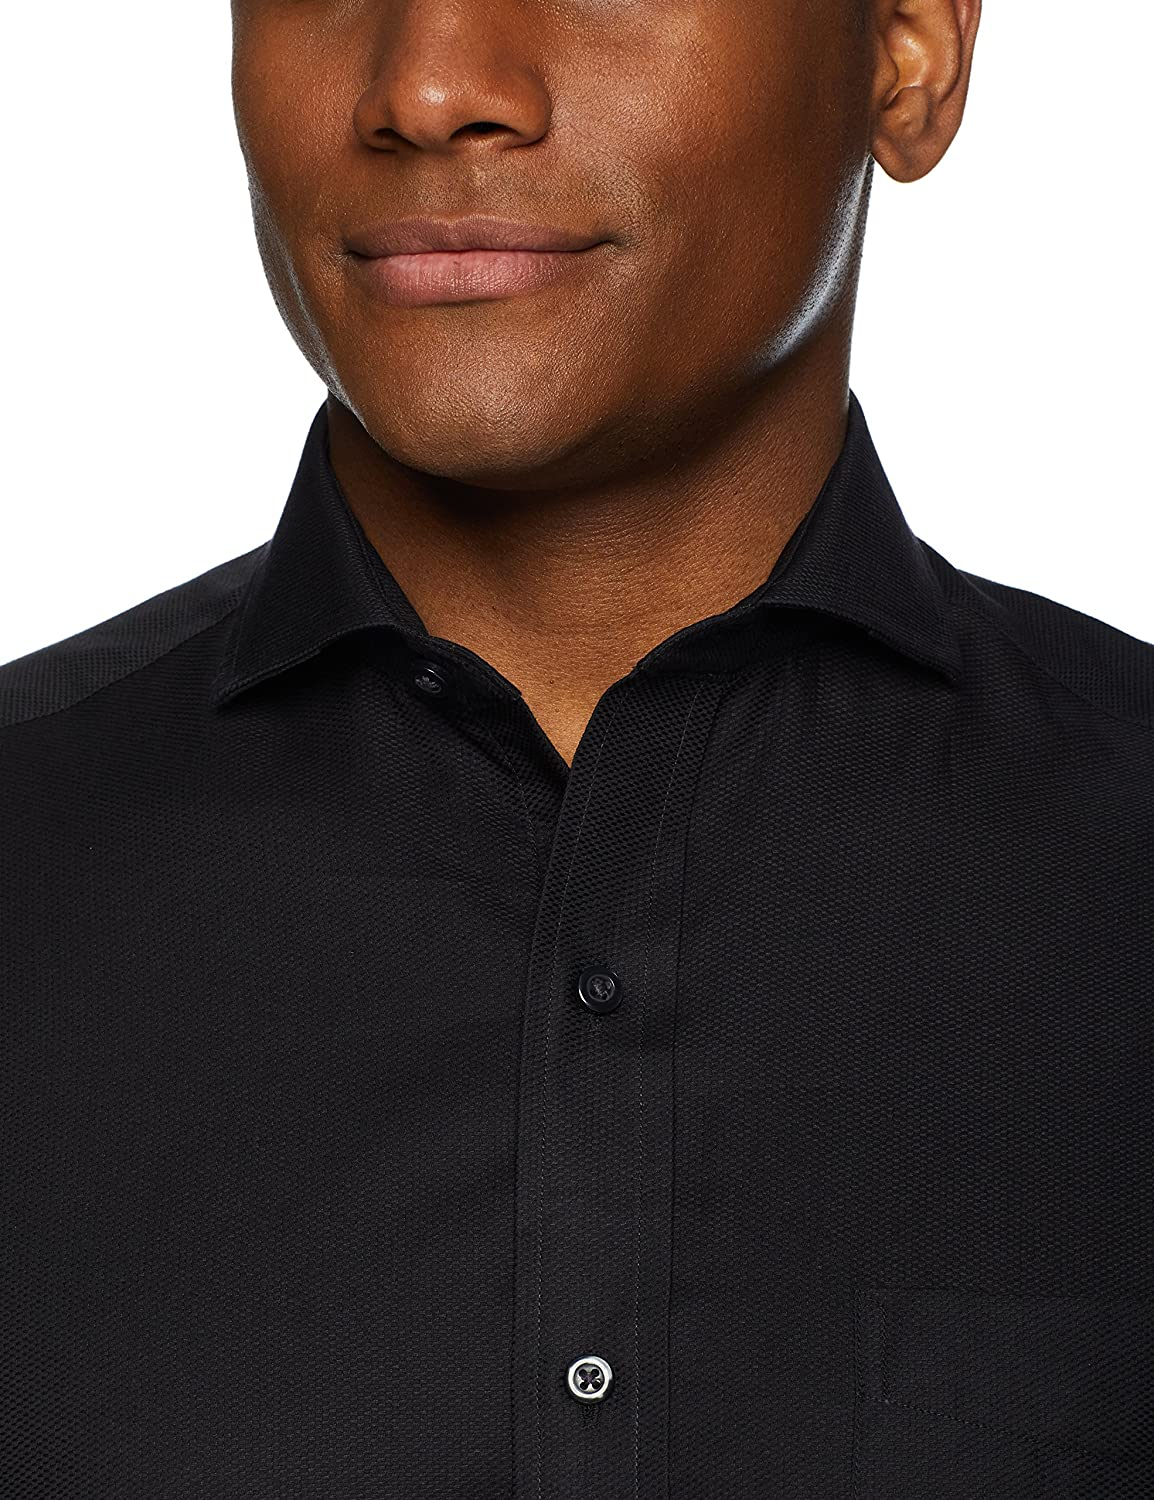 Brand BUTTONED DOWN Mens Classic Fit Cutaway-Collar Supima Cotton Dress Casual Shirt